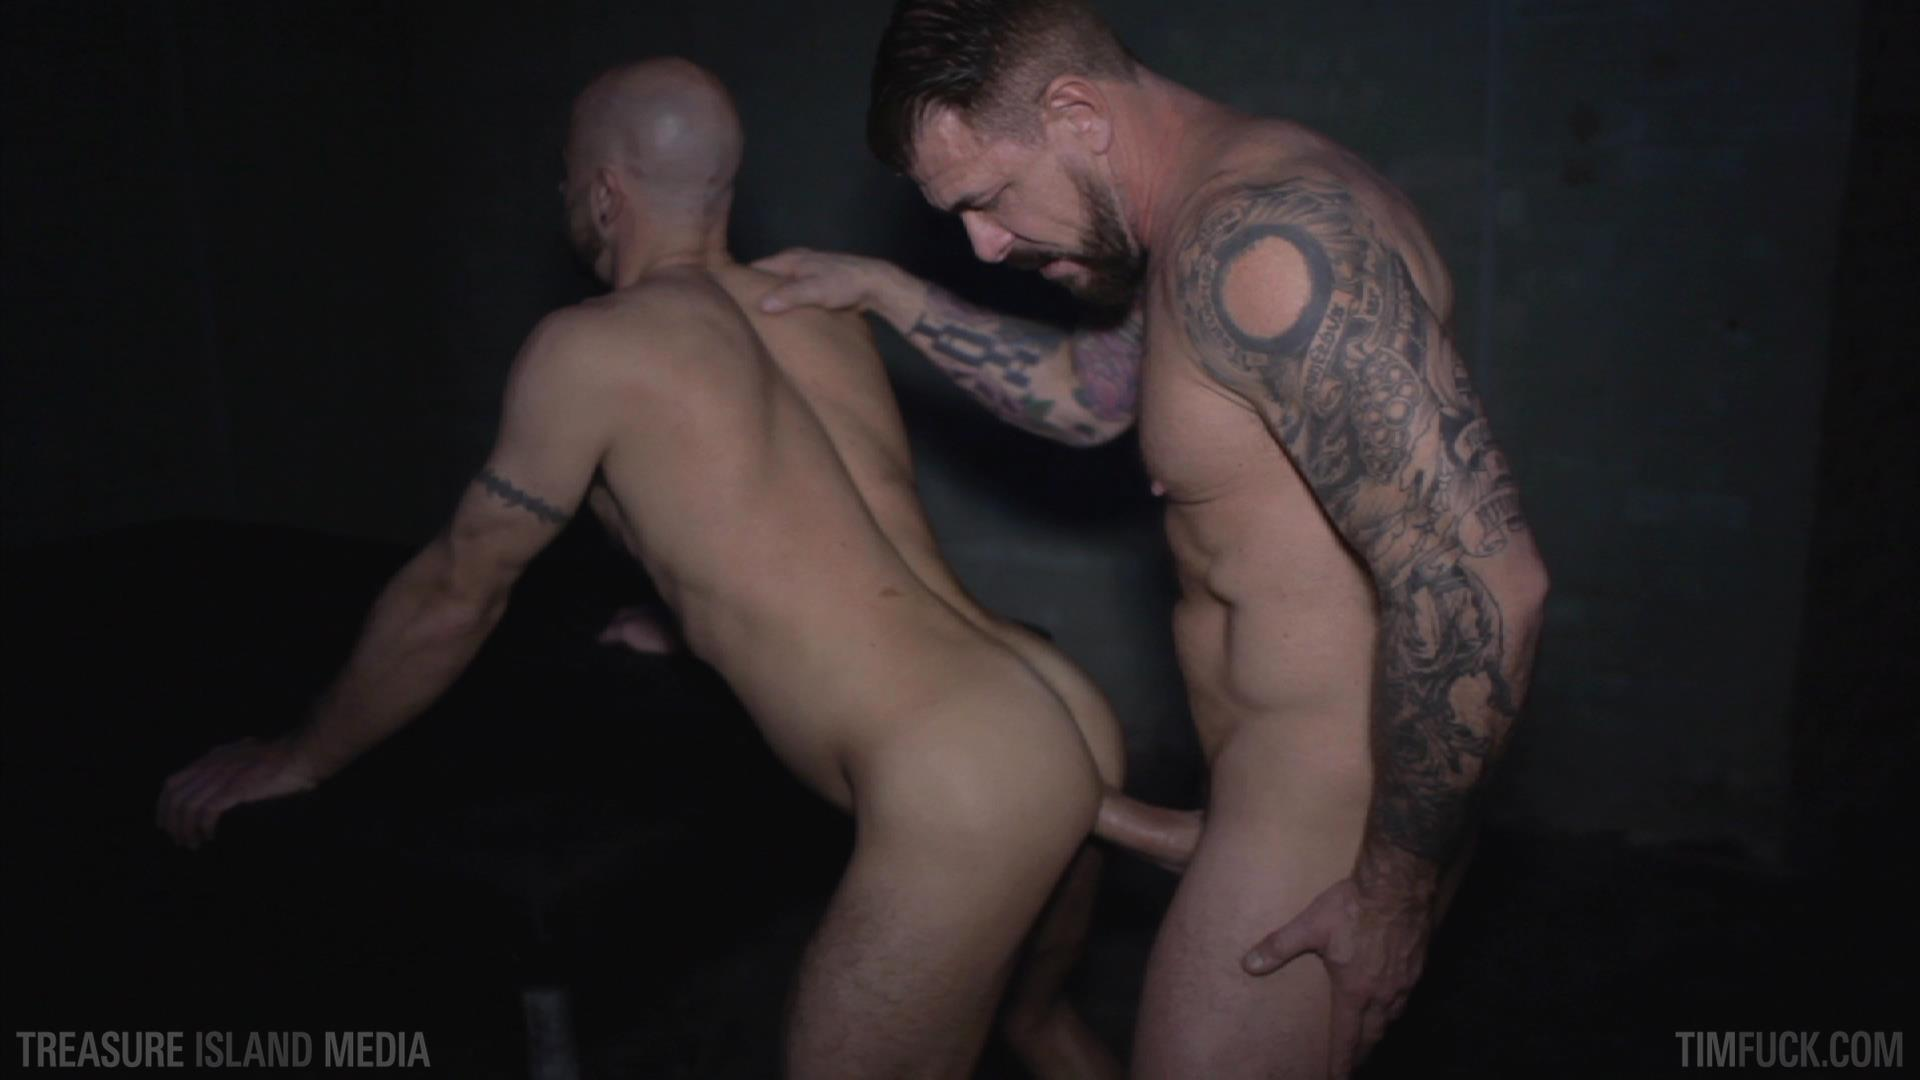 Treasure Island Media TimFuck Rocco Steele and Ben Statham Bareback Amateur Gay Porn 04